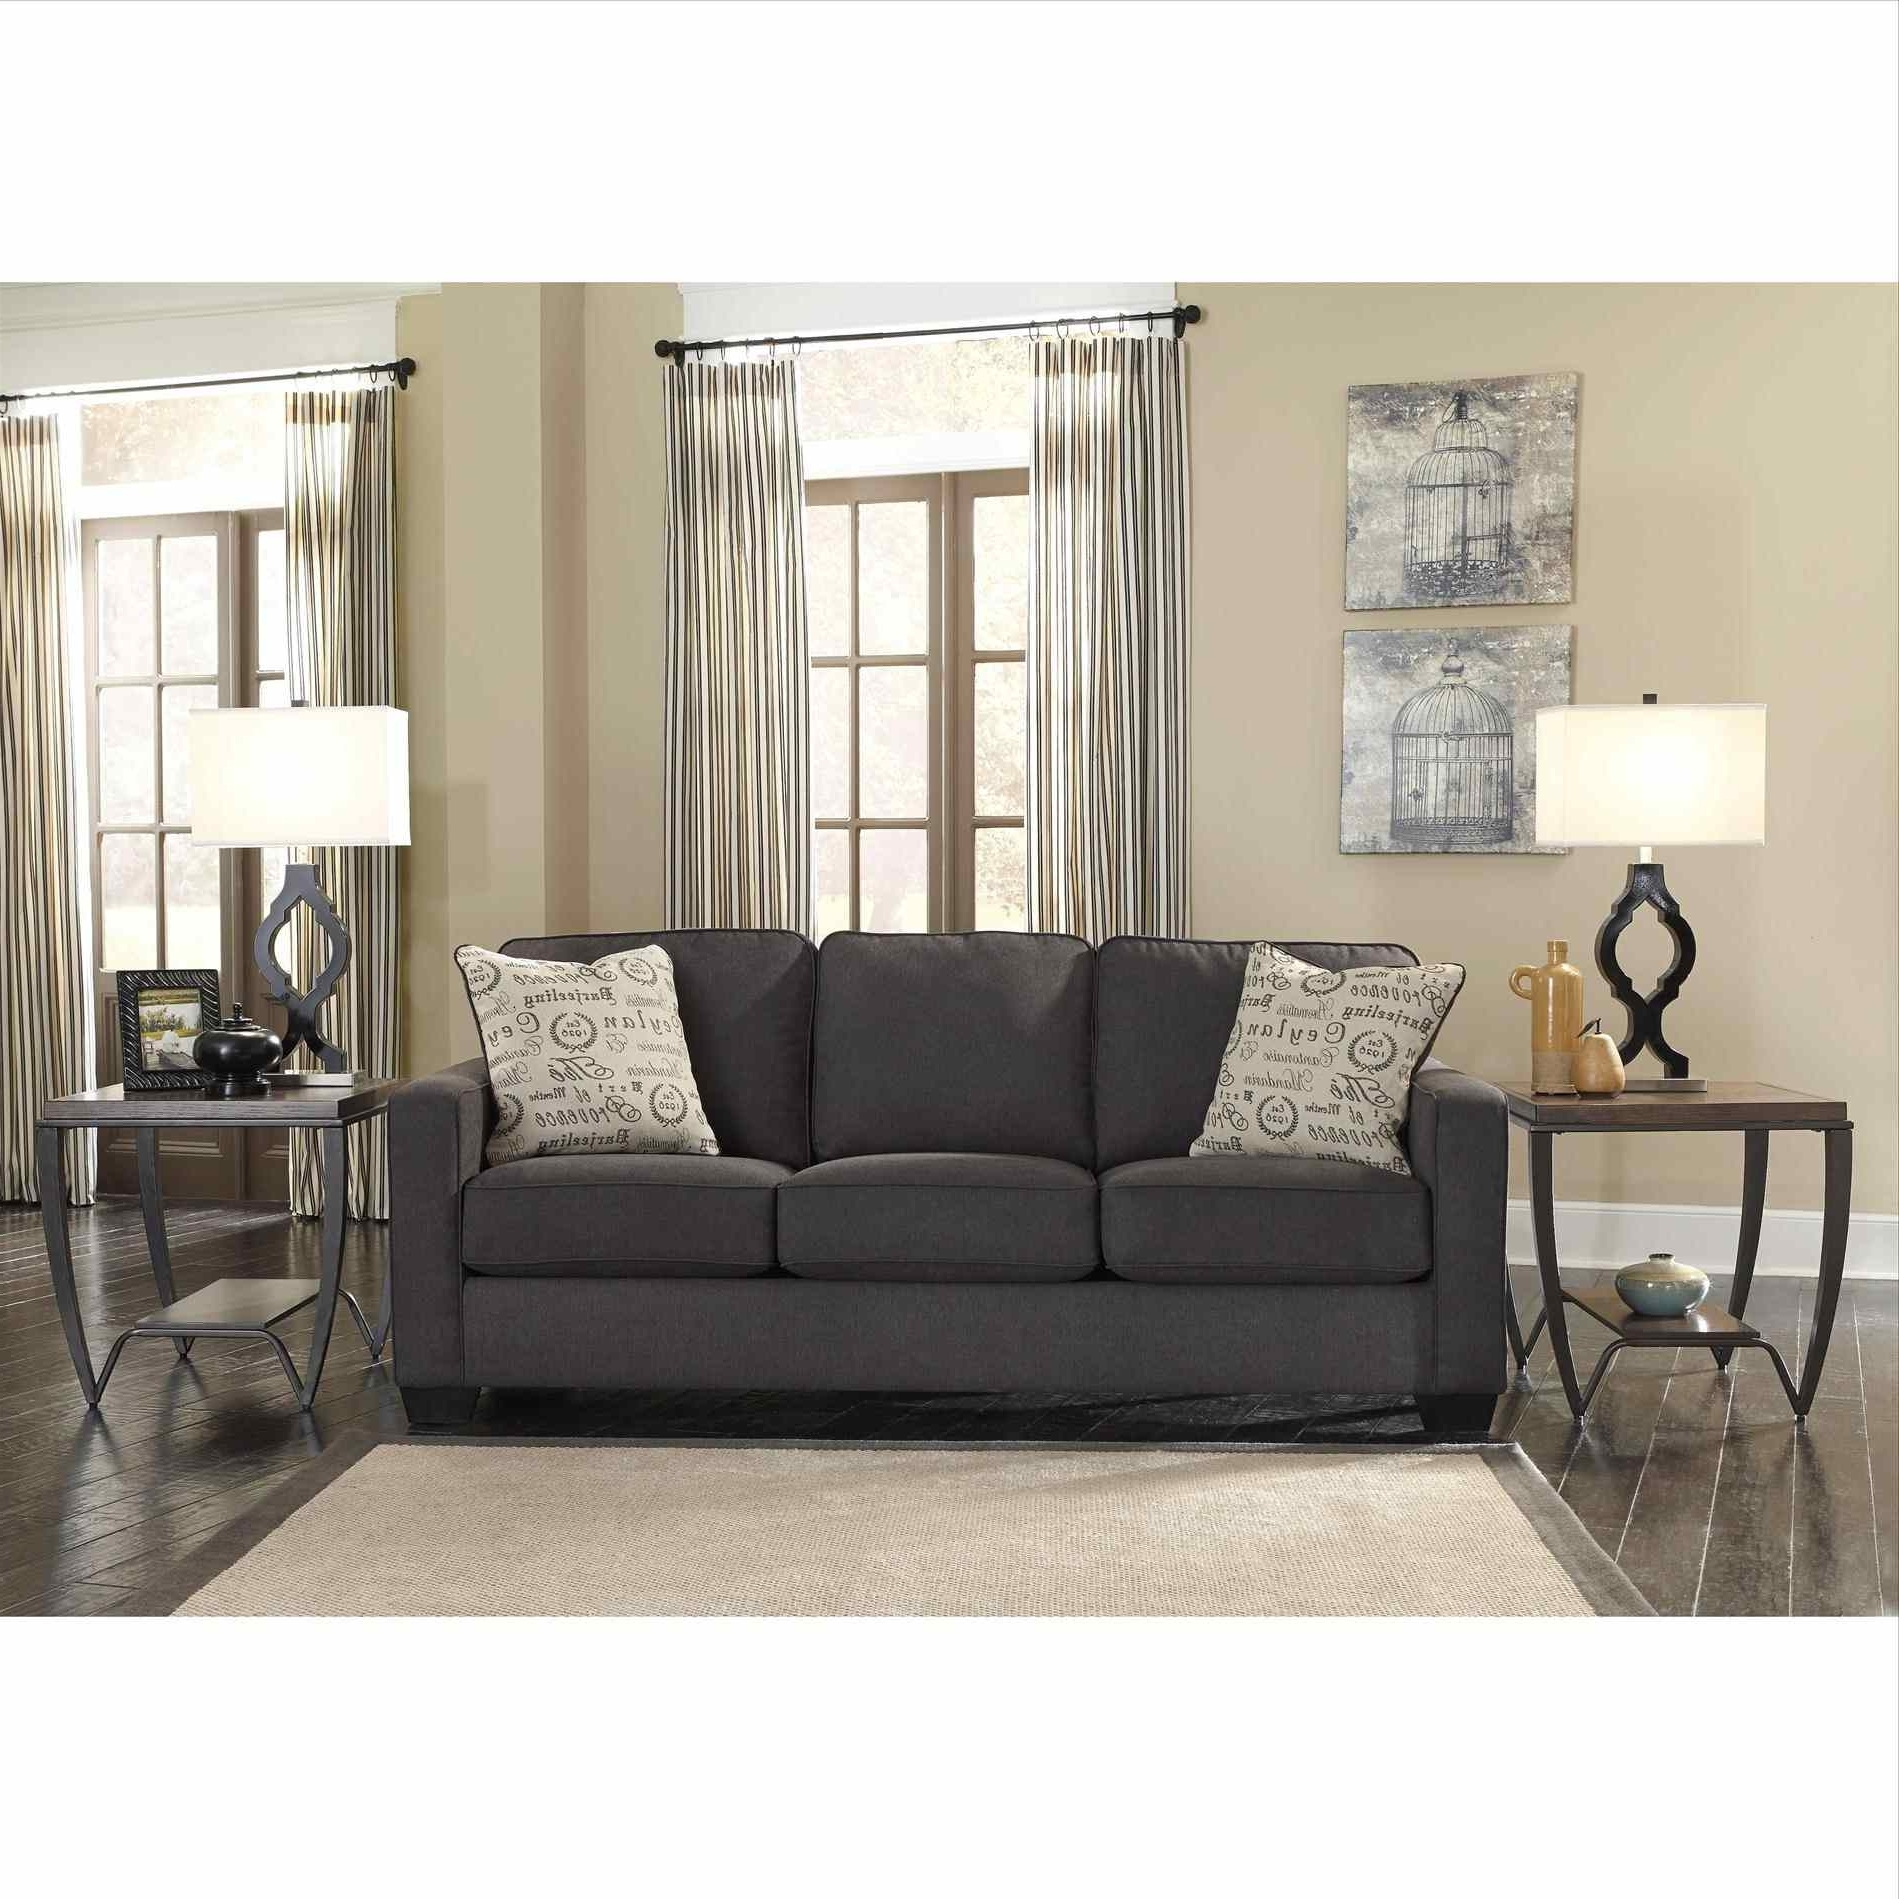 2019 Sam Levitz Sectional Sofas Intended For Couch : W Accent Pillows Sam Levitz Furniture Brindon Sofas Living (View 1 of 20)